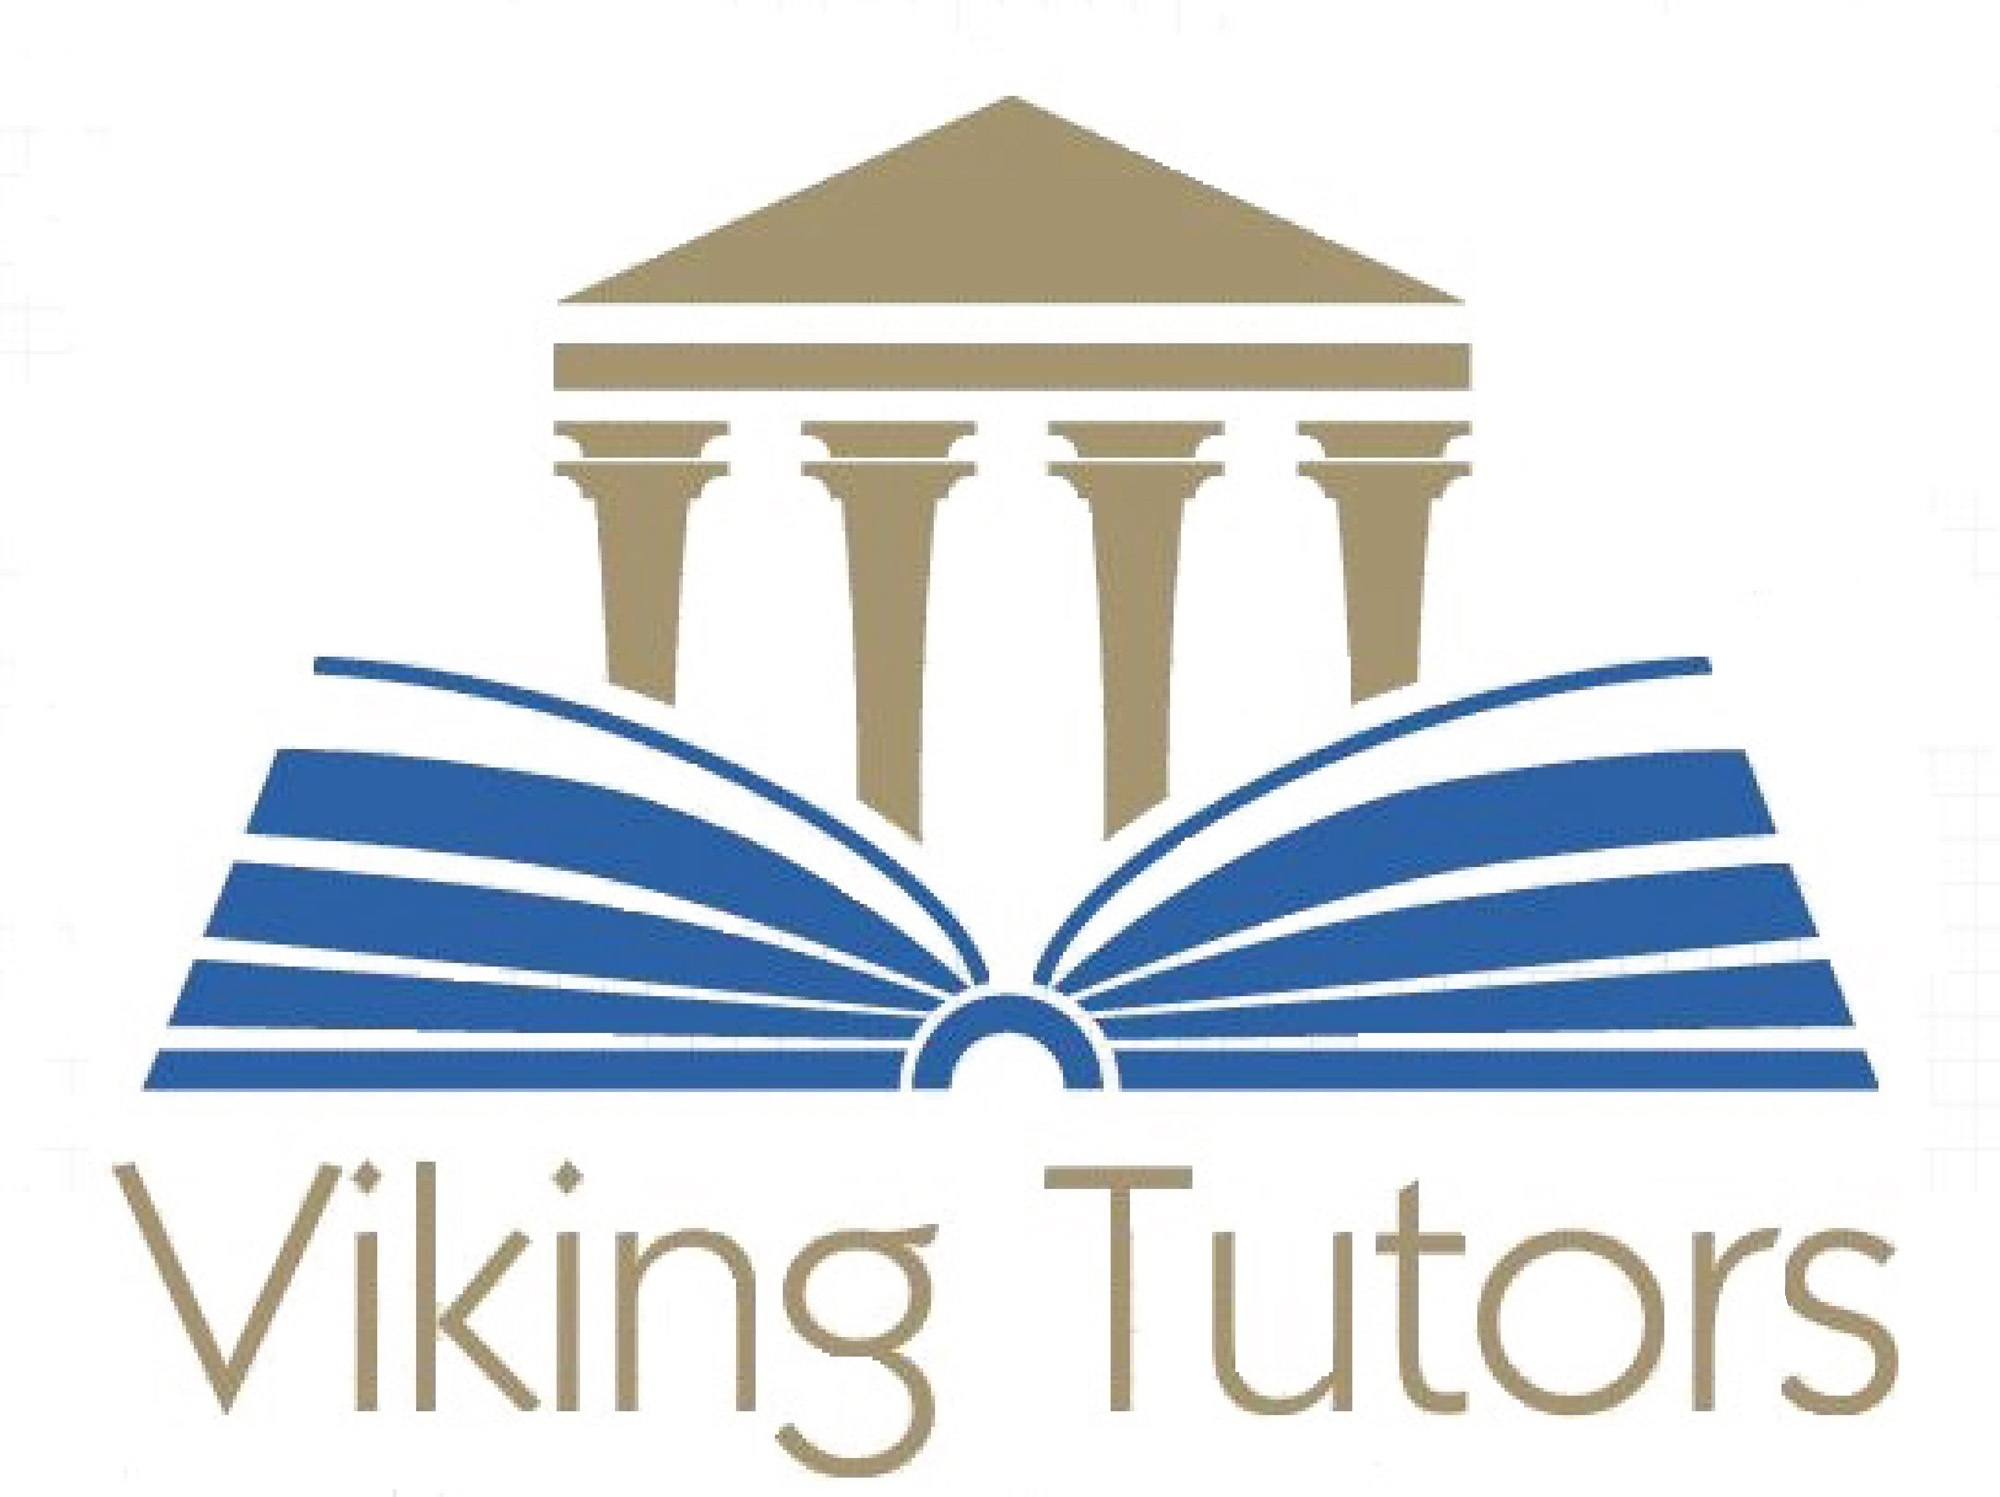 viking_tutors_better.jpg